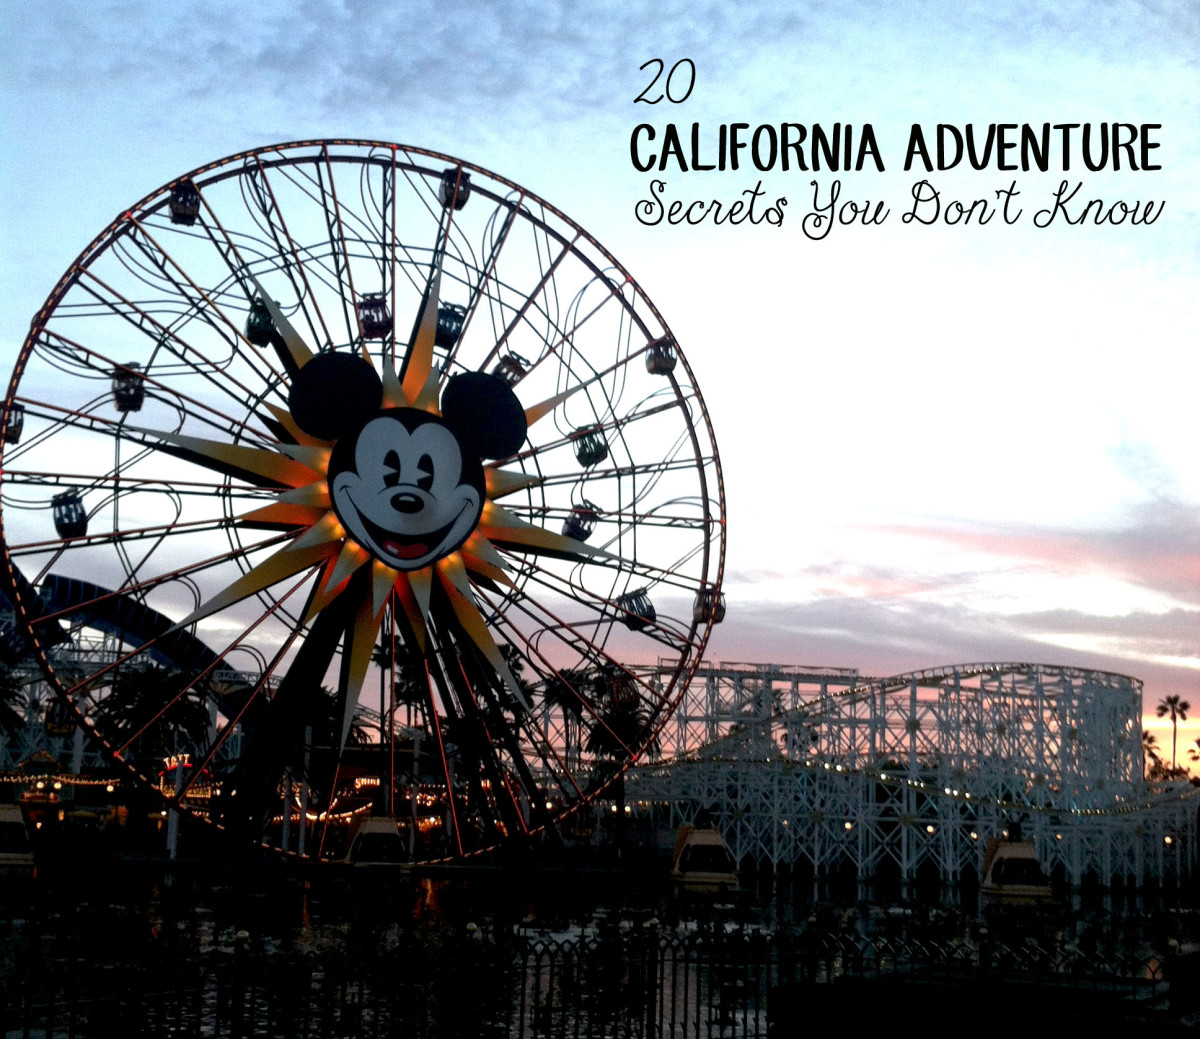 20 California Adventure Secrets You Don't Know